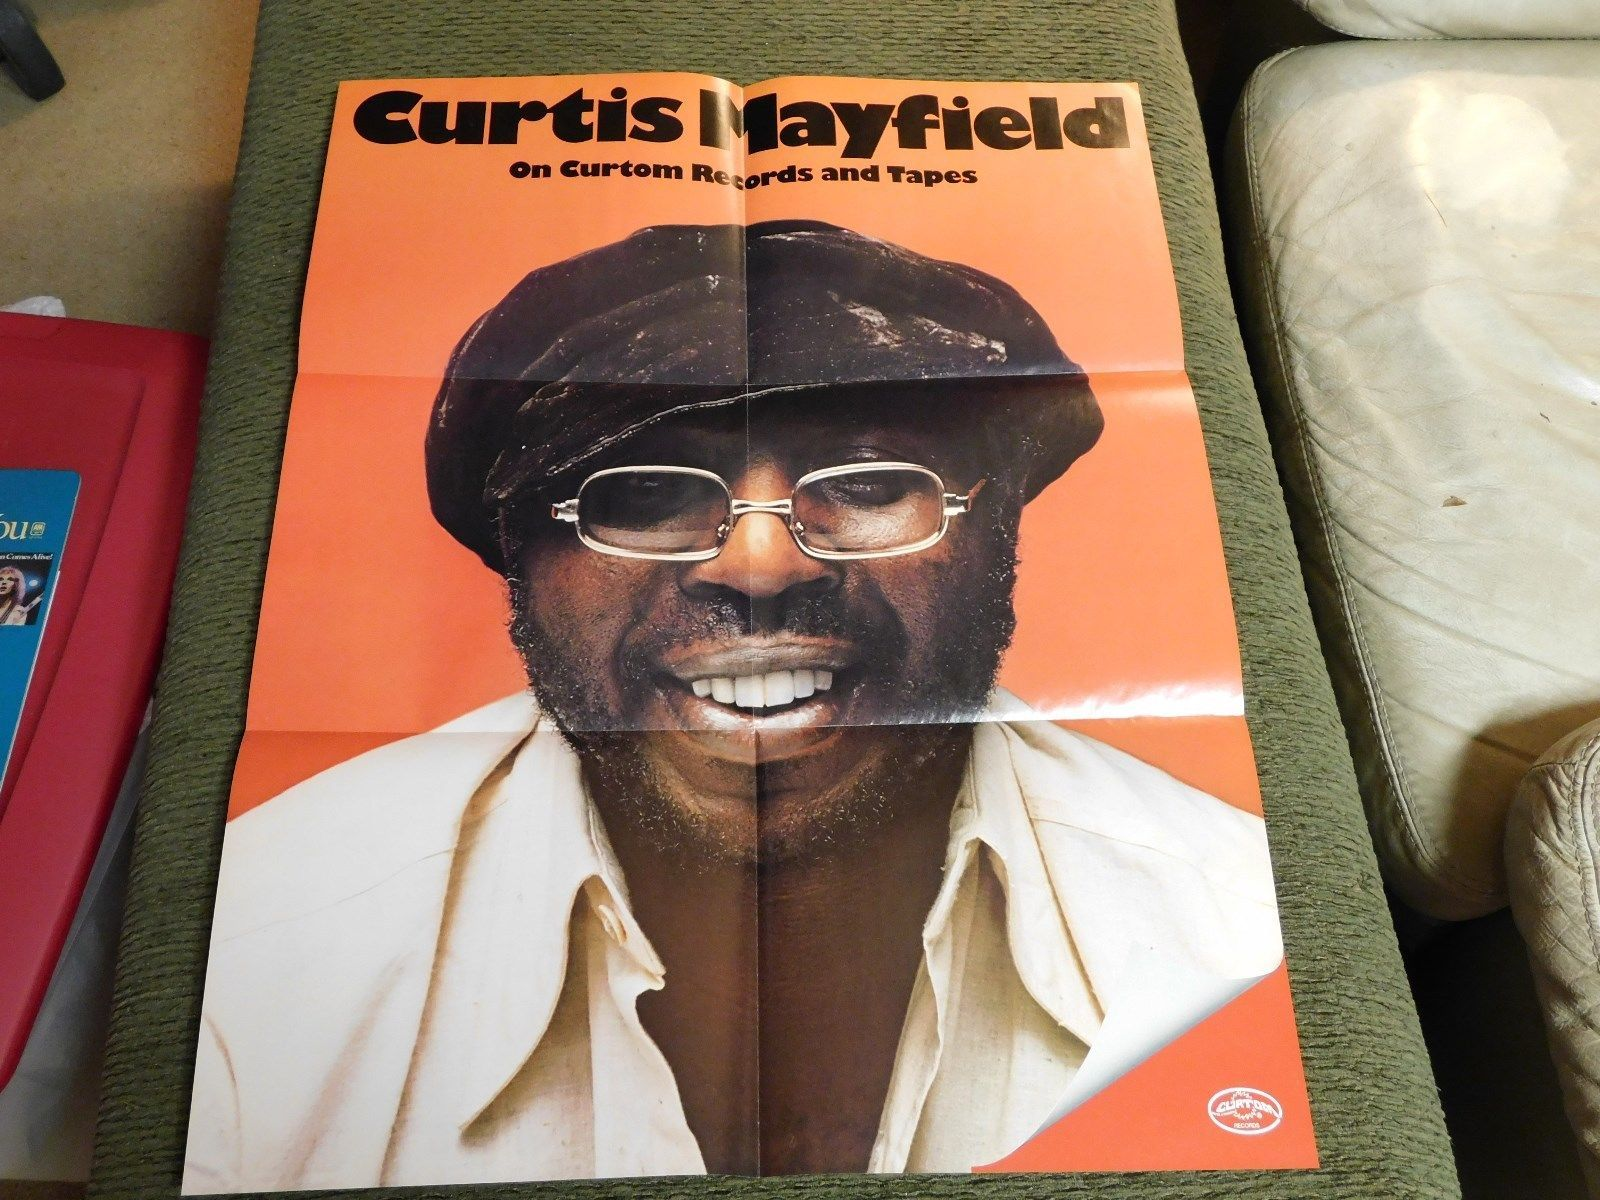 Curtis mayfield on curtom records catalogpersonality